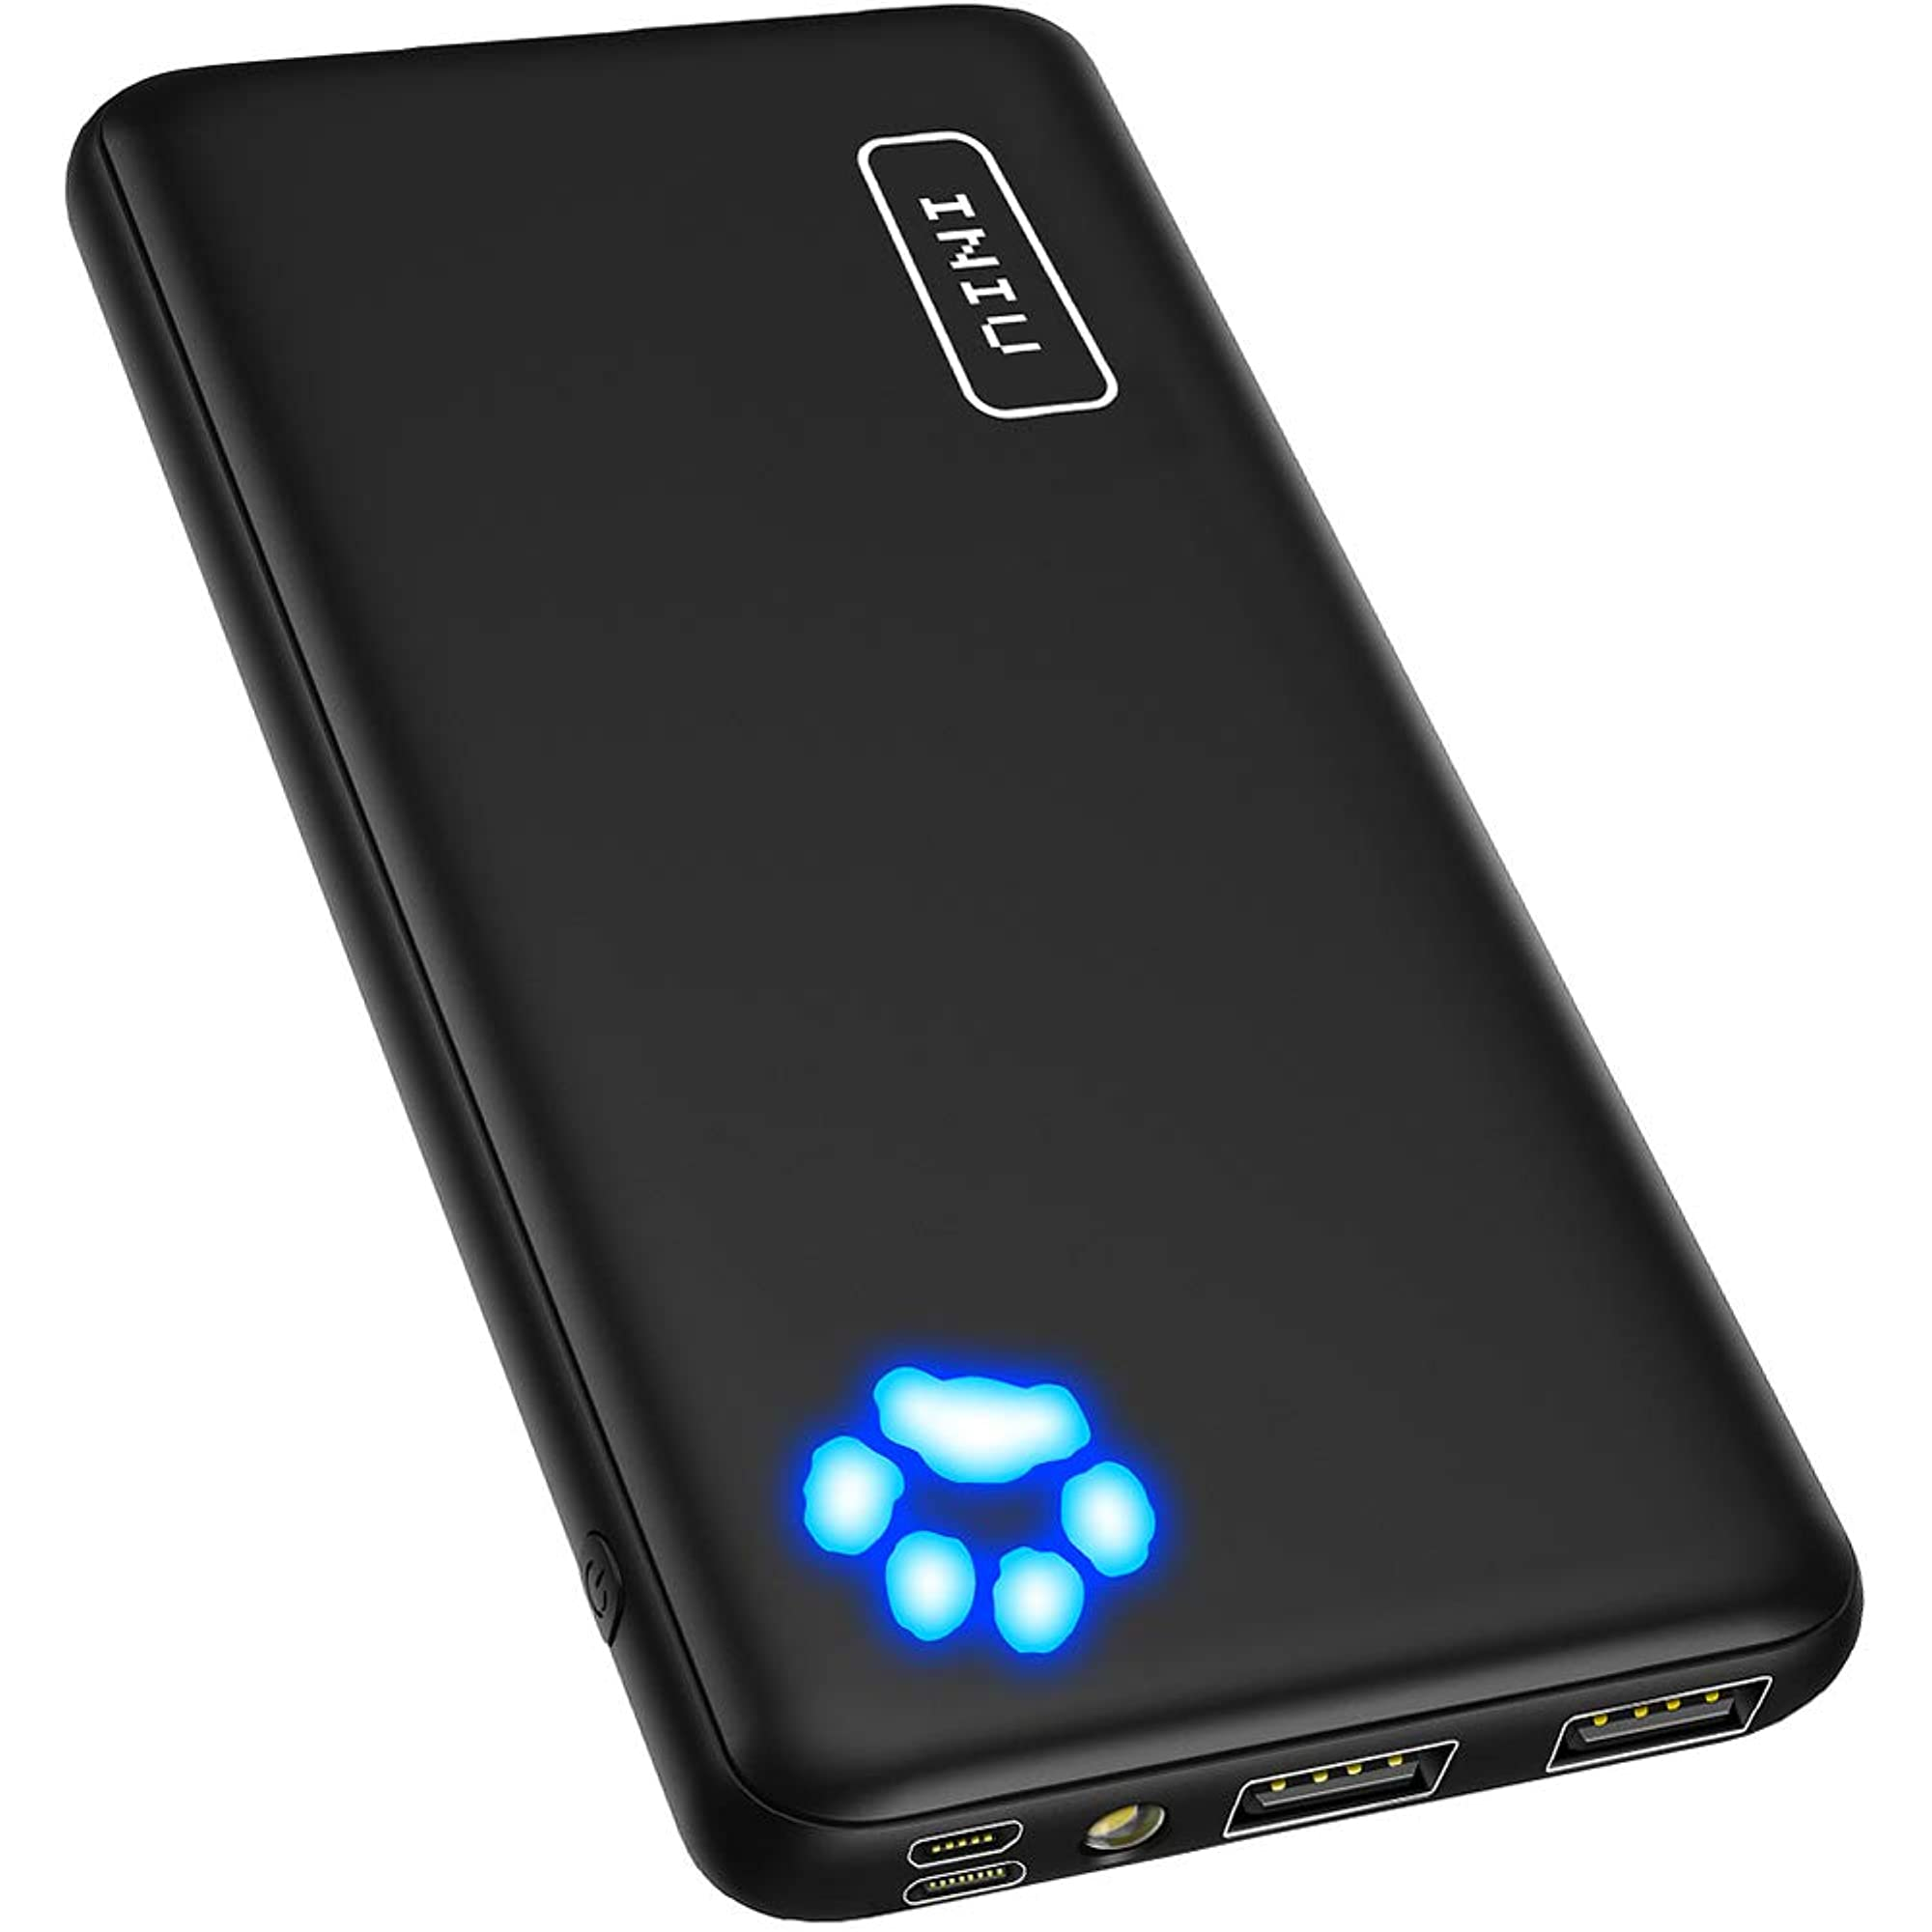 Ultra-Slim Dual 3A High-Speed Portable Charger.